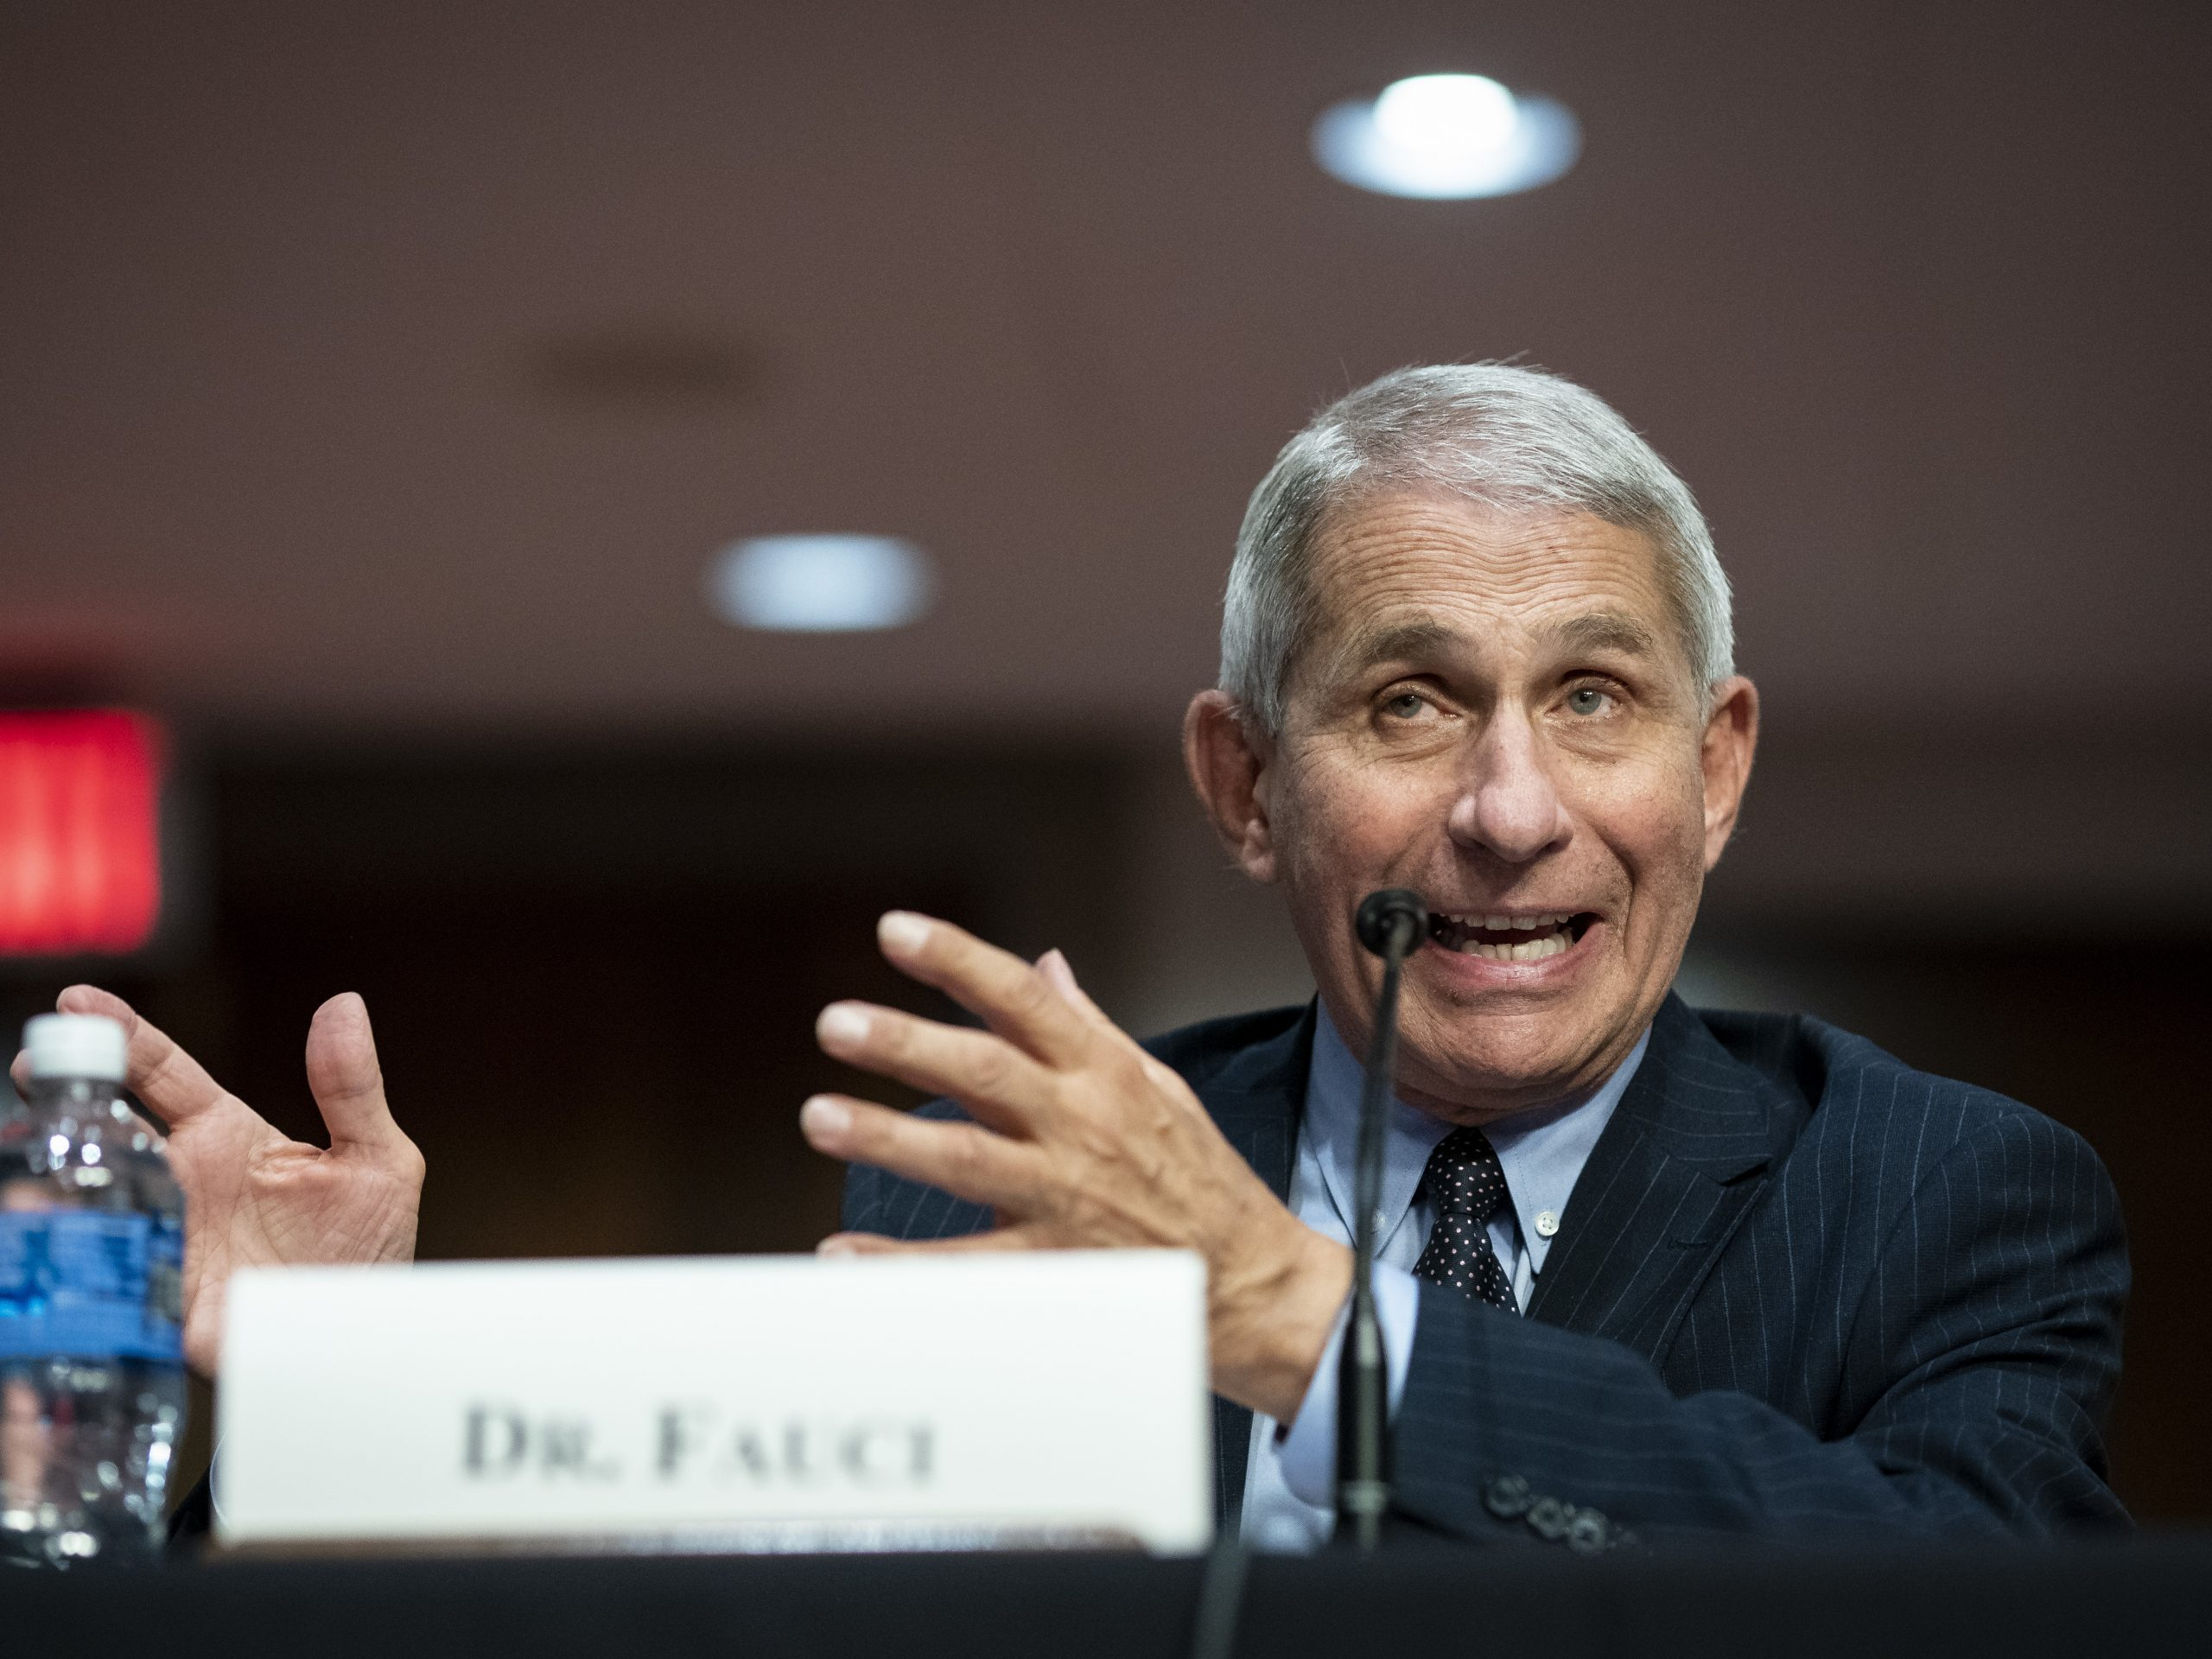 Dr. Anthony Fauci, director of the National Institute of Allergy and Infectious Diseases, speaks during a Senate Health, Education, Labor and Pensions Committee hearing on Tuesday.